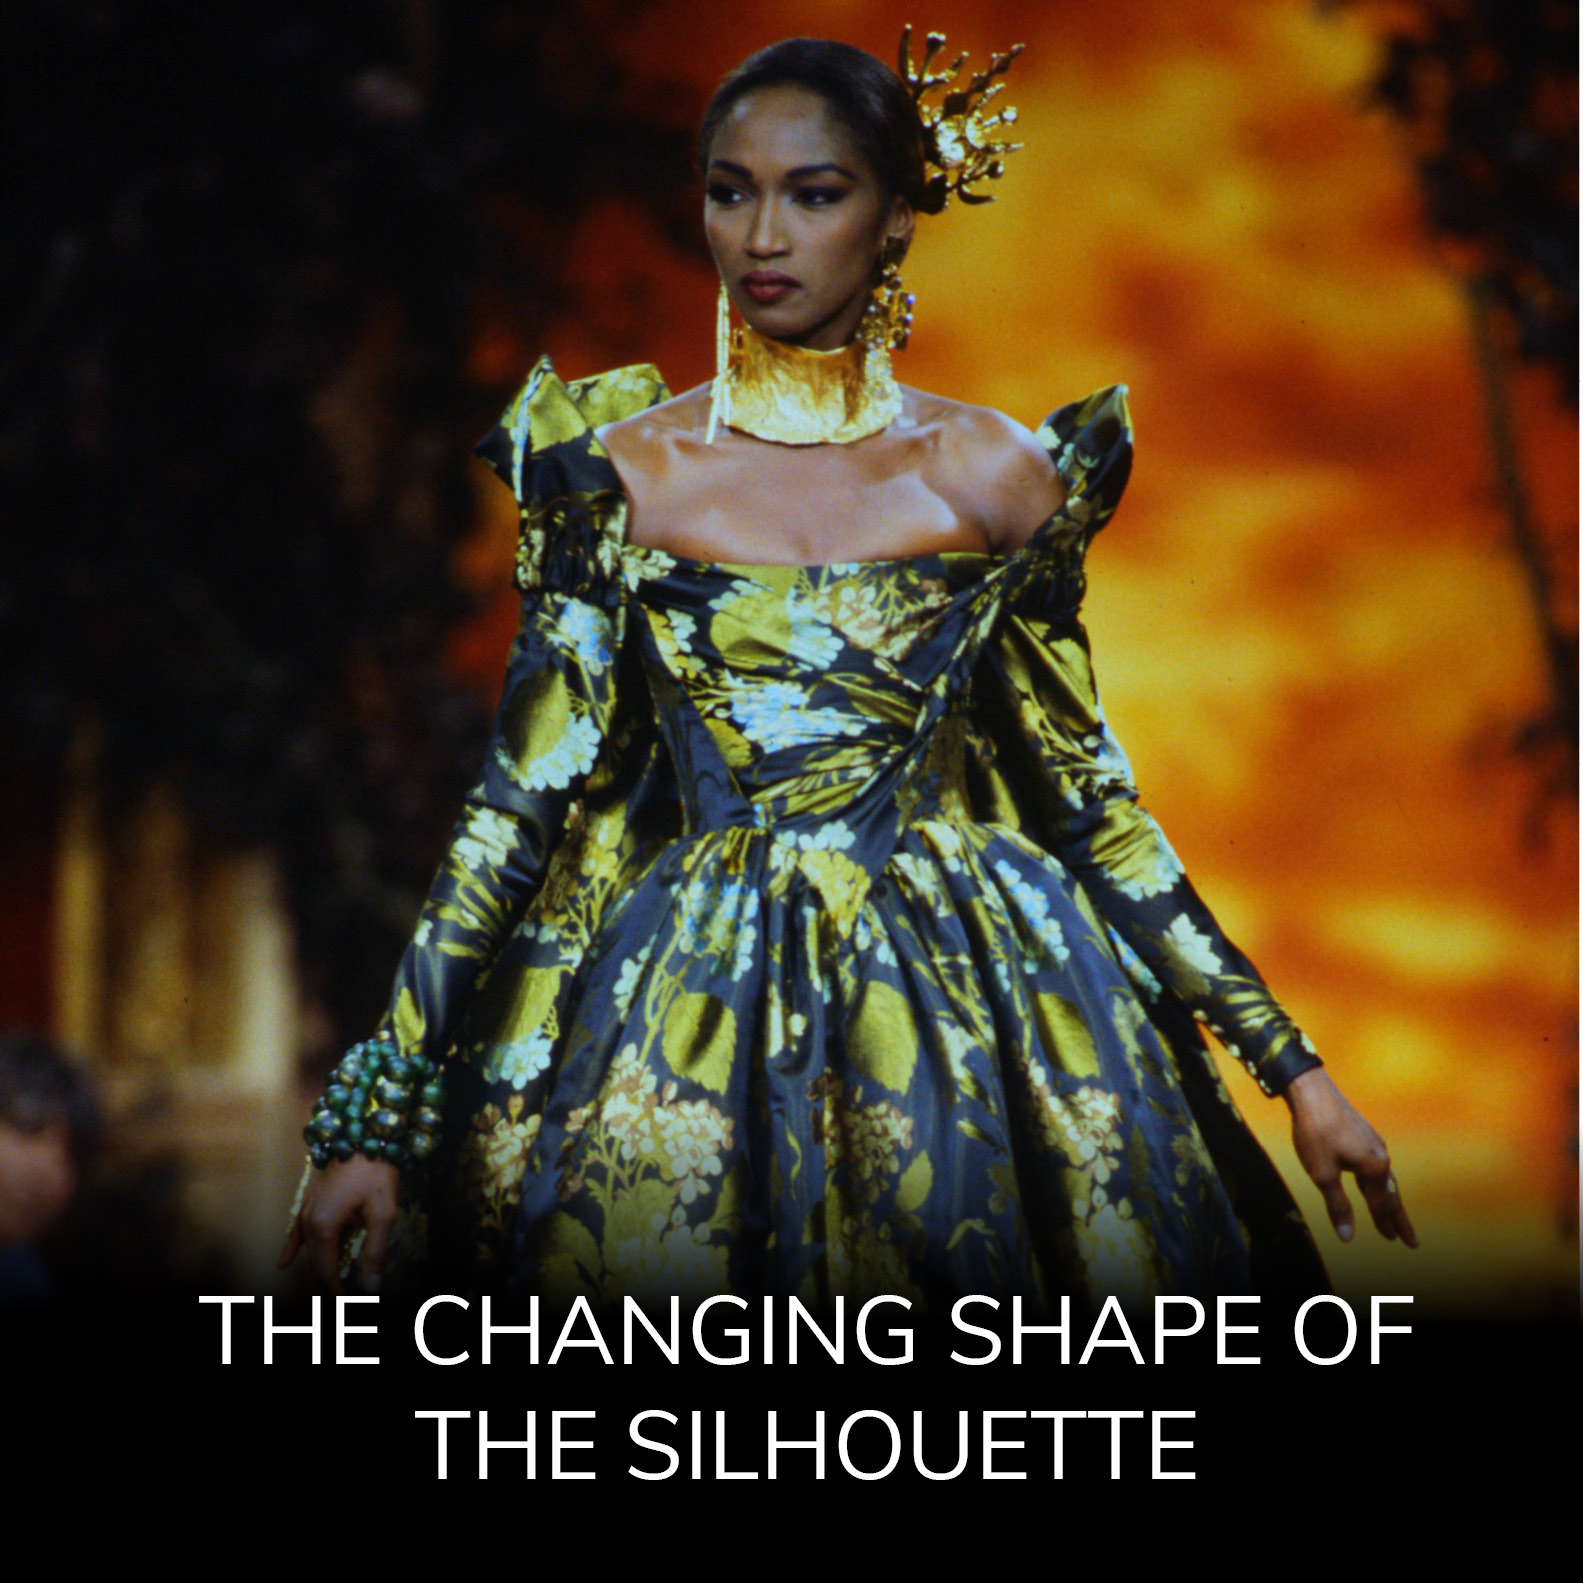 The Changing Shape of the Silhouette in Fashion Shows